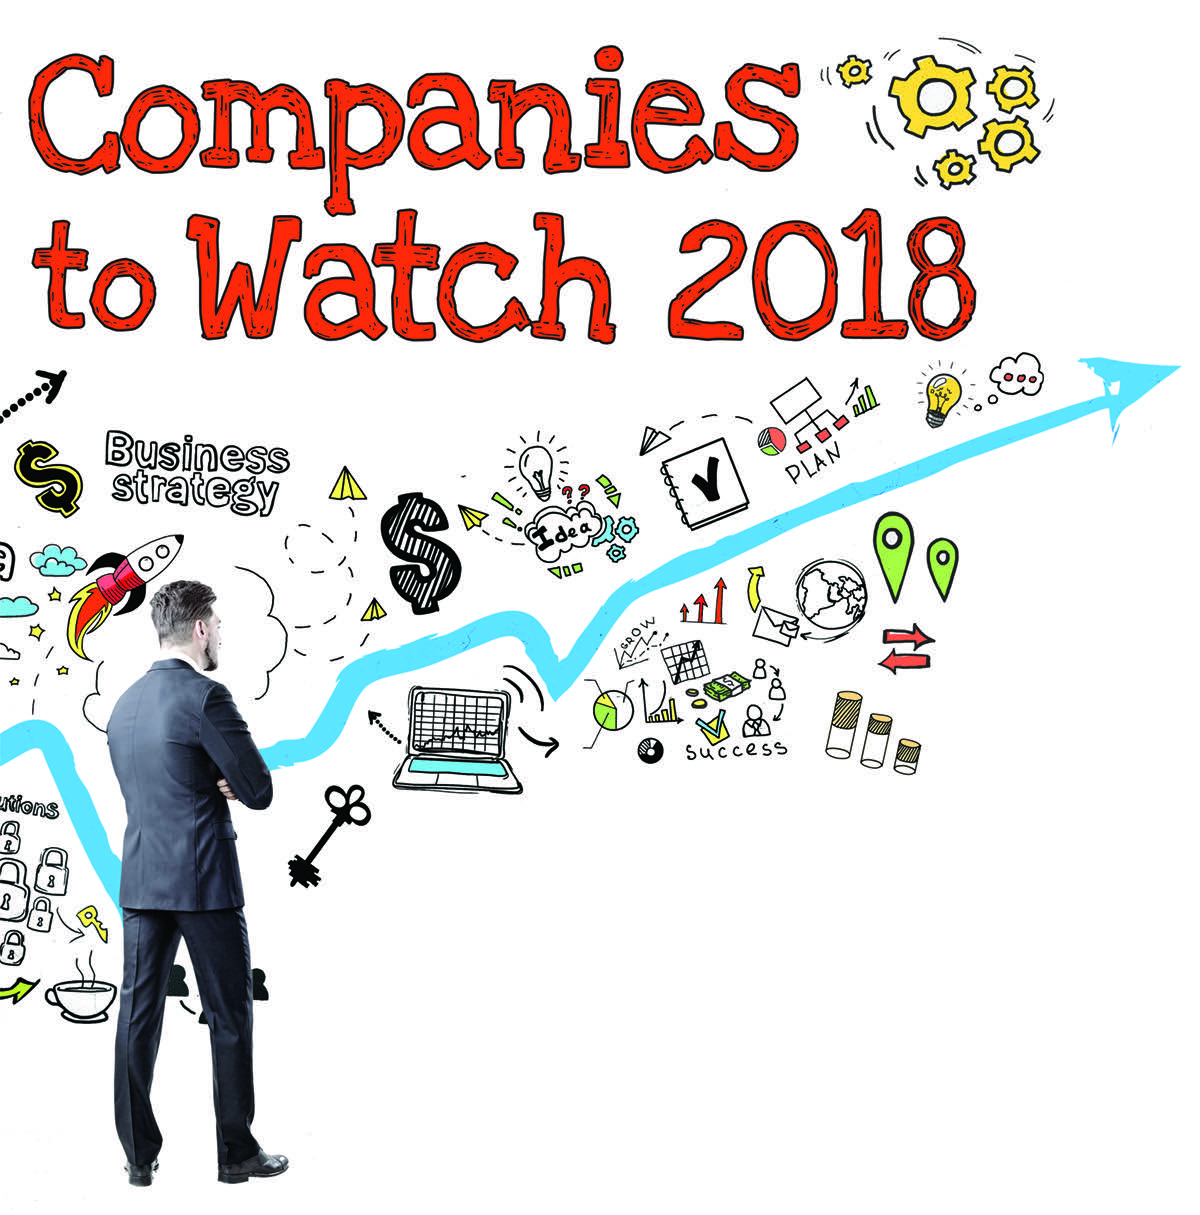 Companies to watch in 2018